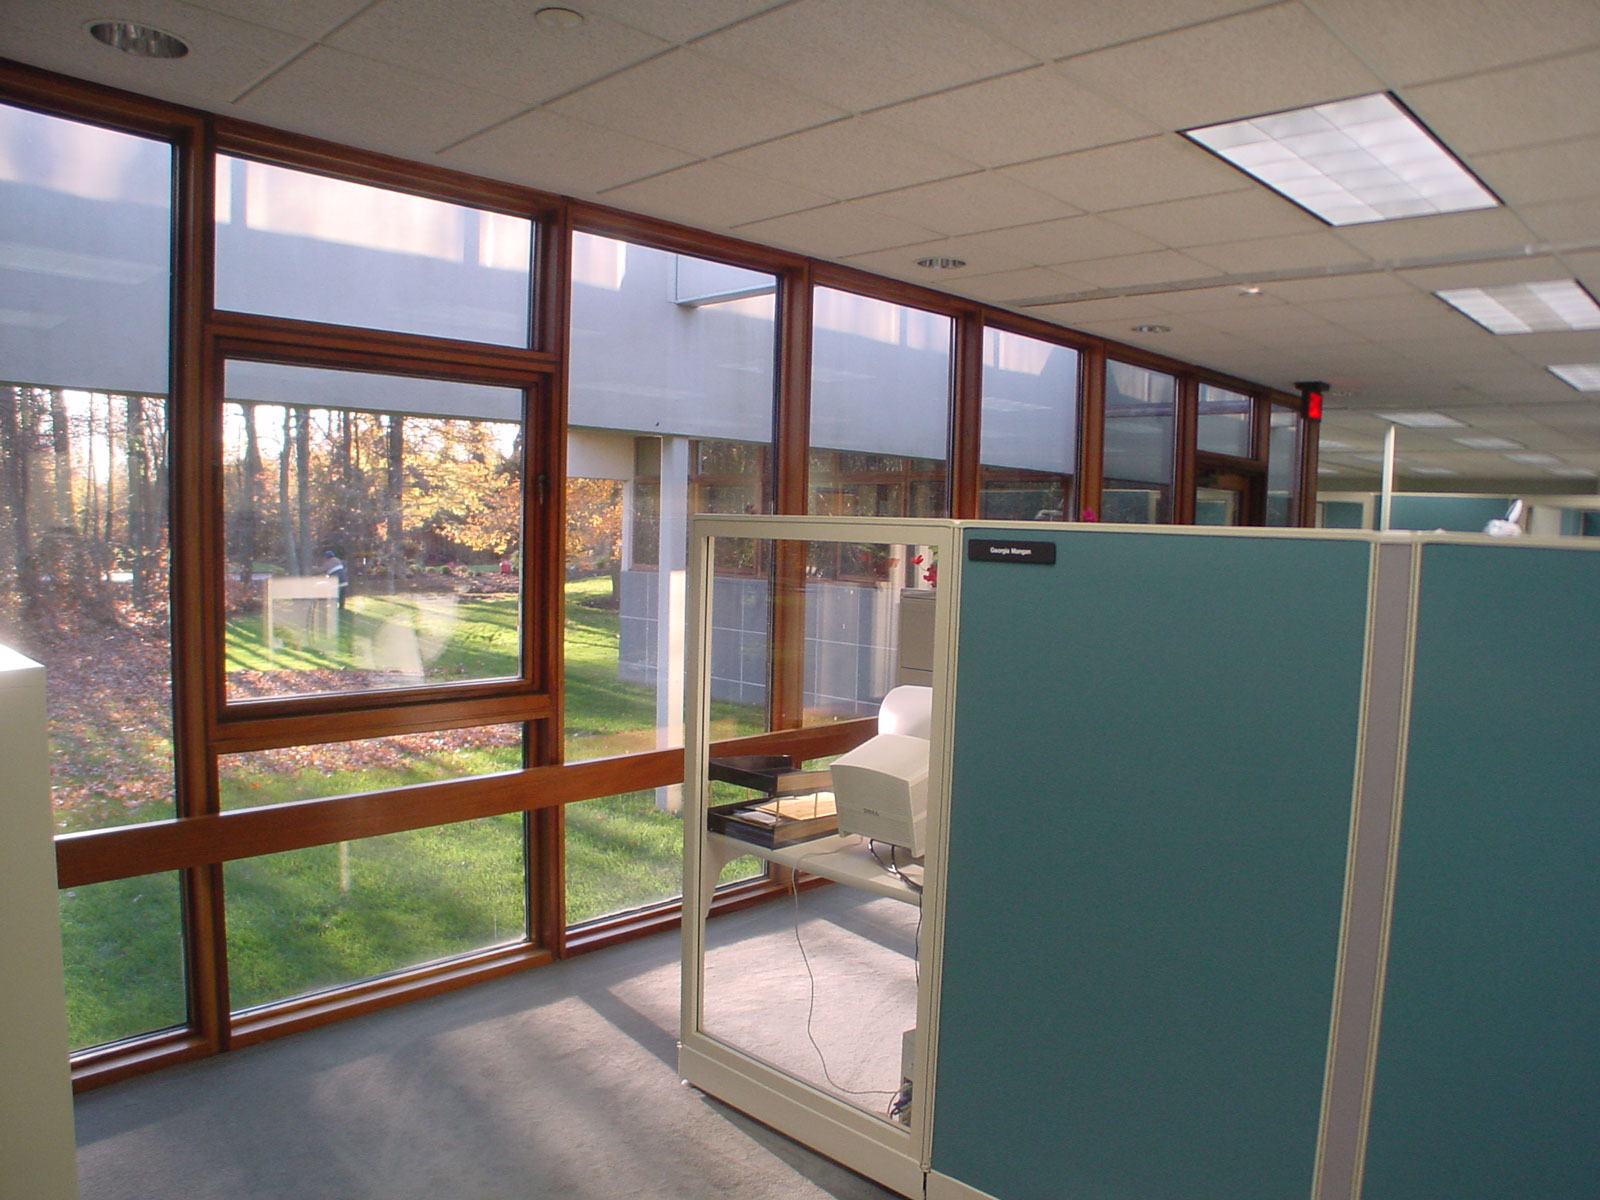 Operable windows bring in fresh air to the office area and exterior shading devices allow  Daylight to brighten the interior without glare.